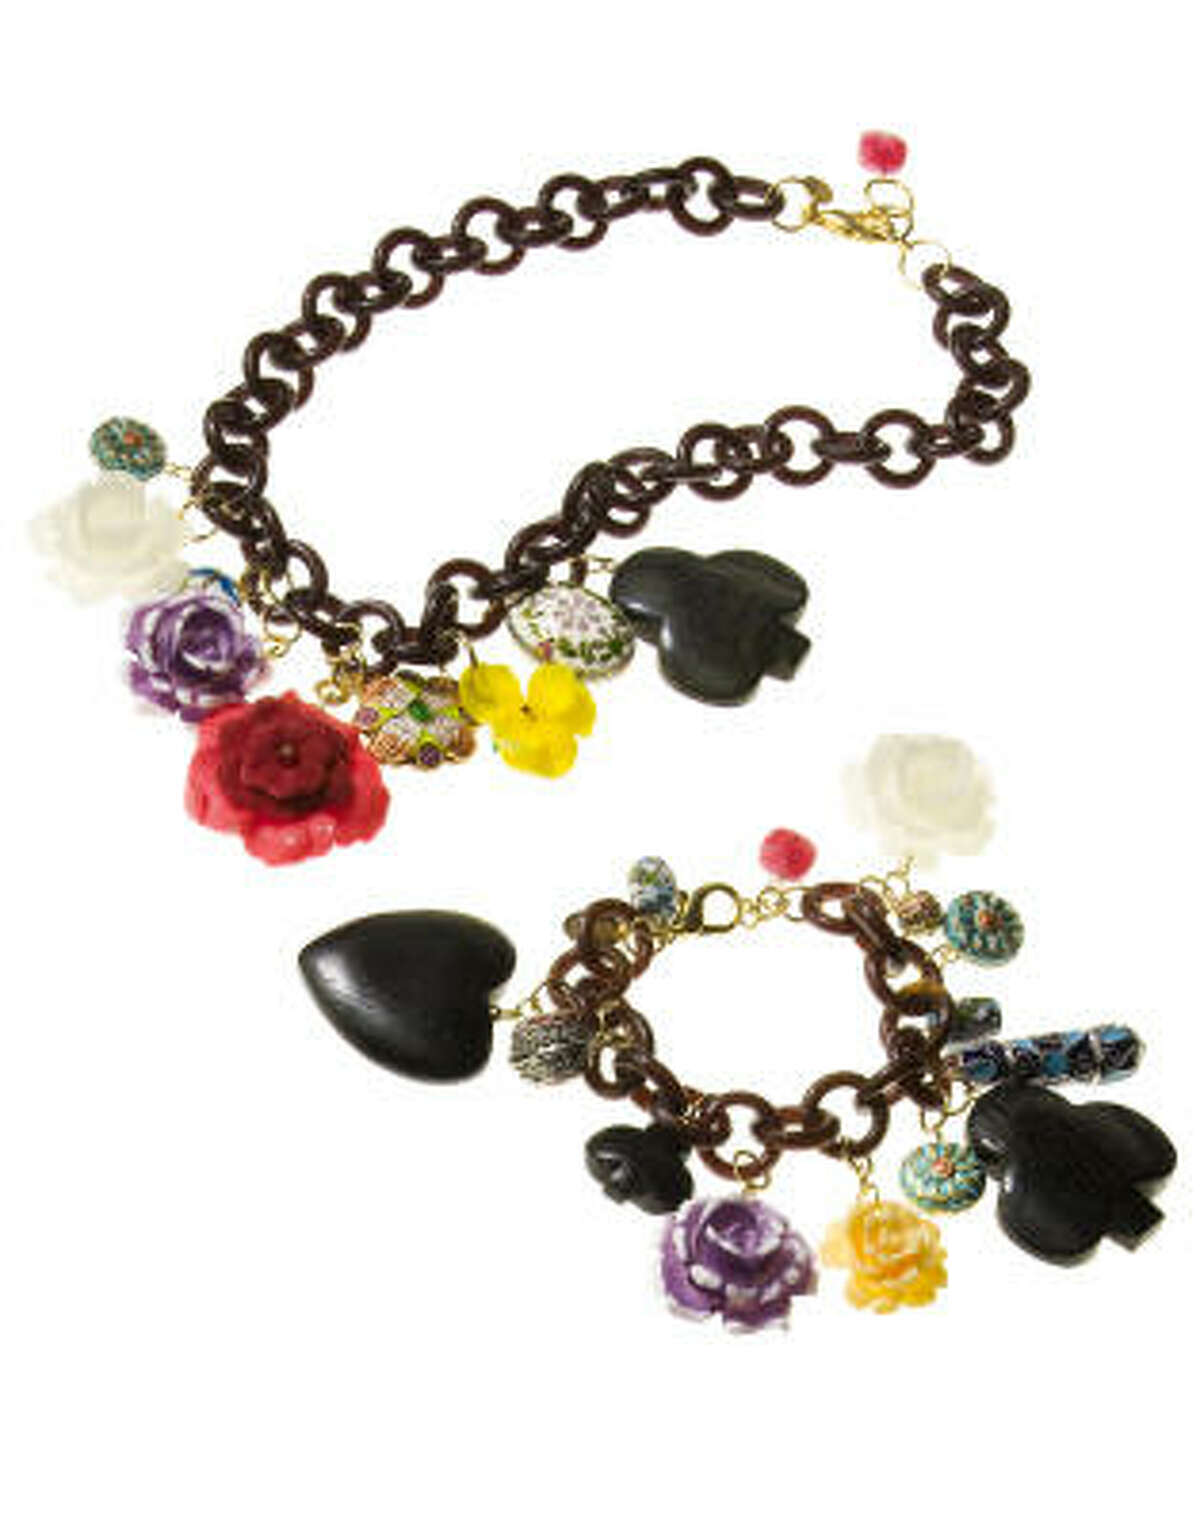 Erickson Beamon's flower charm necklace, $39.99, and and flower charm bracelet, $29.99, from Target.